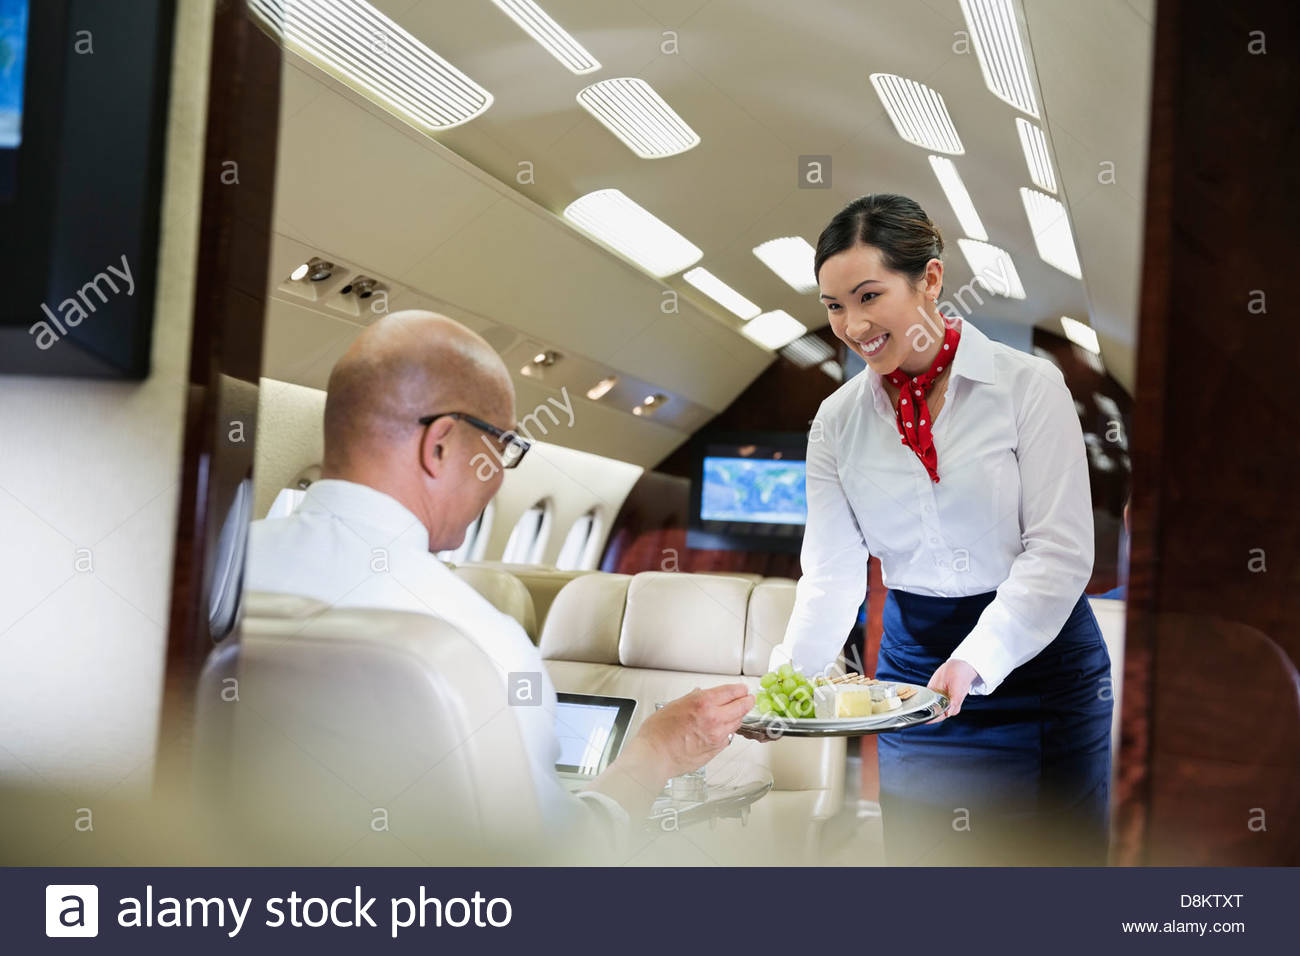 flight attendant serving food to male passenger in airplane stock